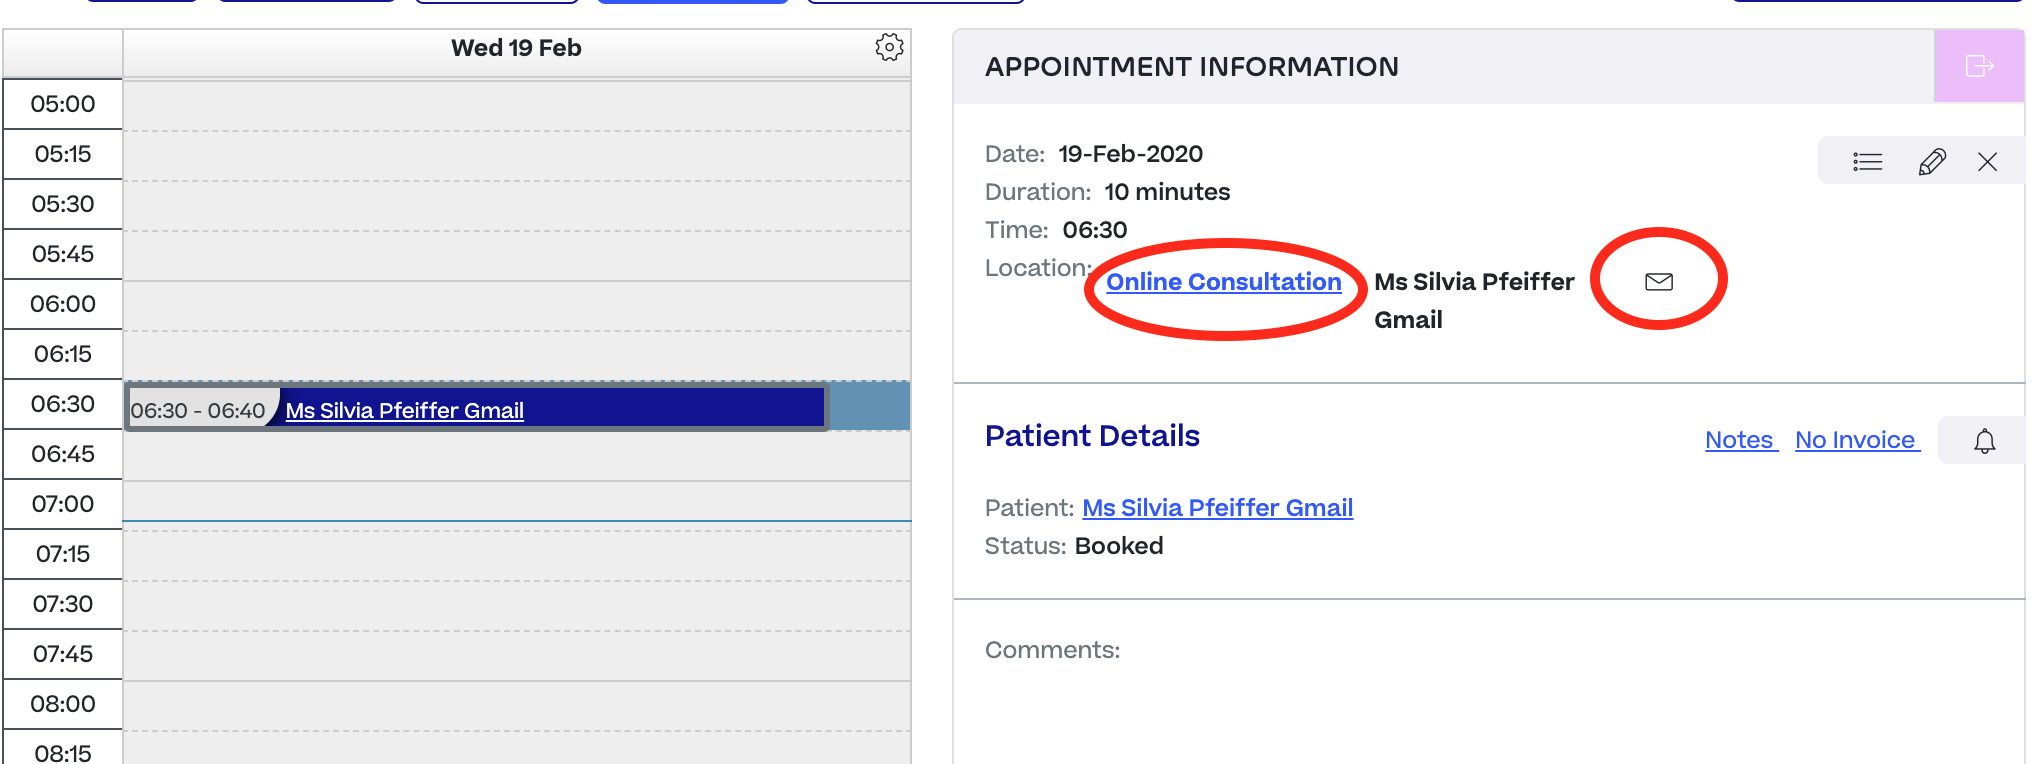 Halaxy Appointment information